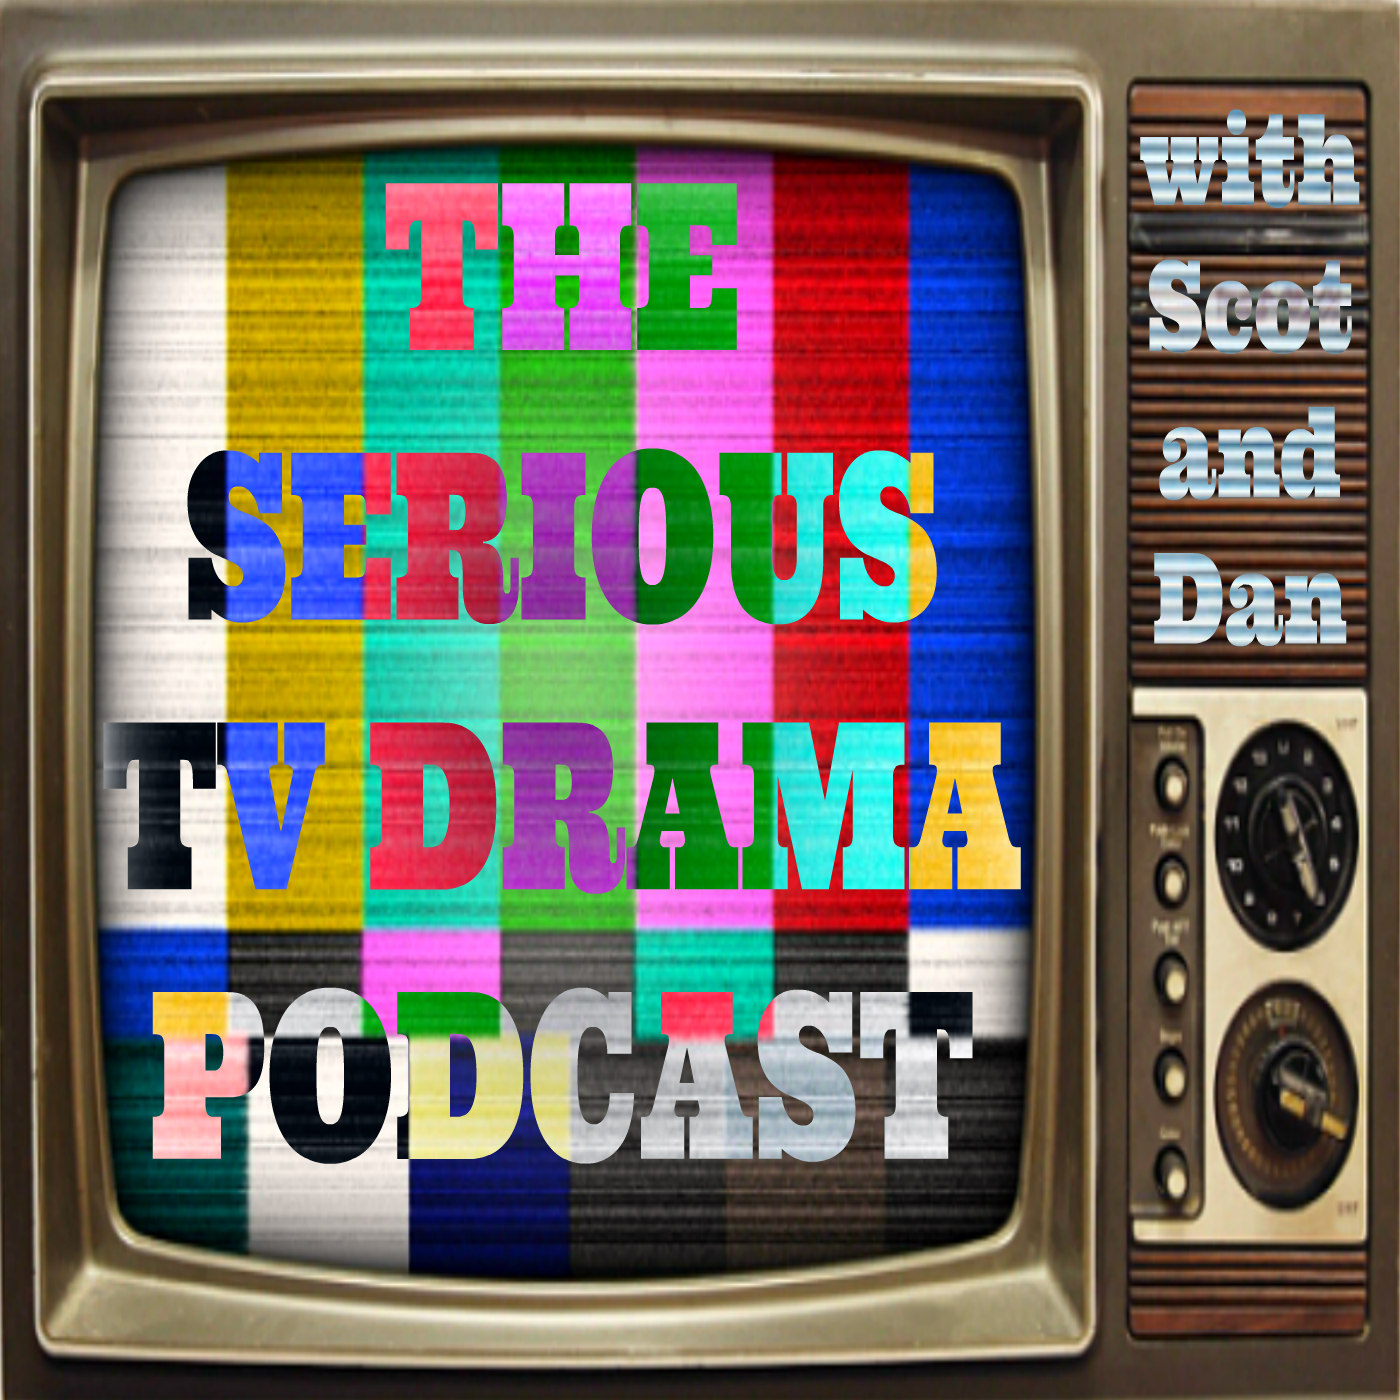 The Serious TV Drama Podcast with Scot and Dan